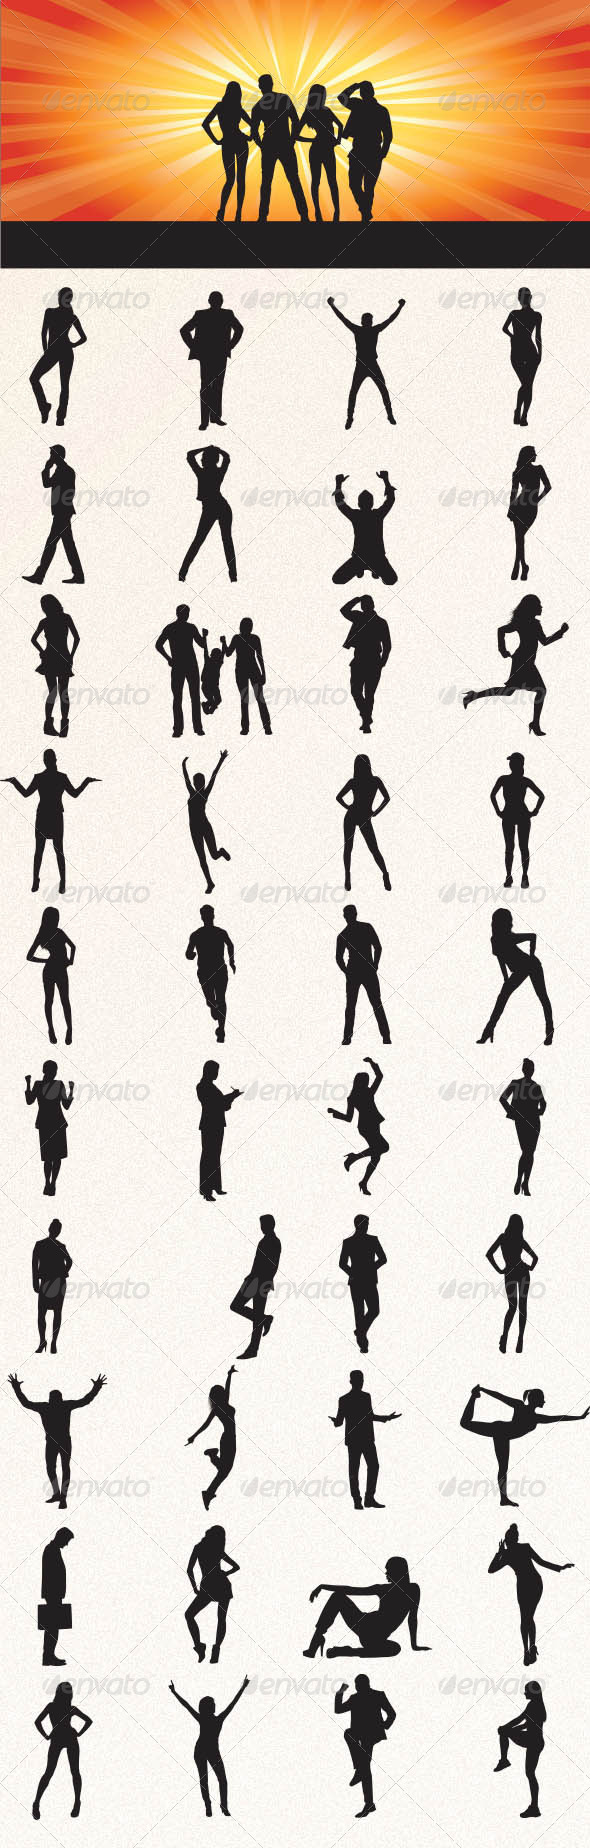 GraphicRiver People Silhouettes 8499200